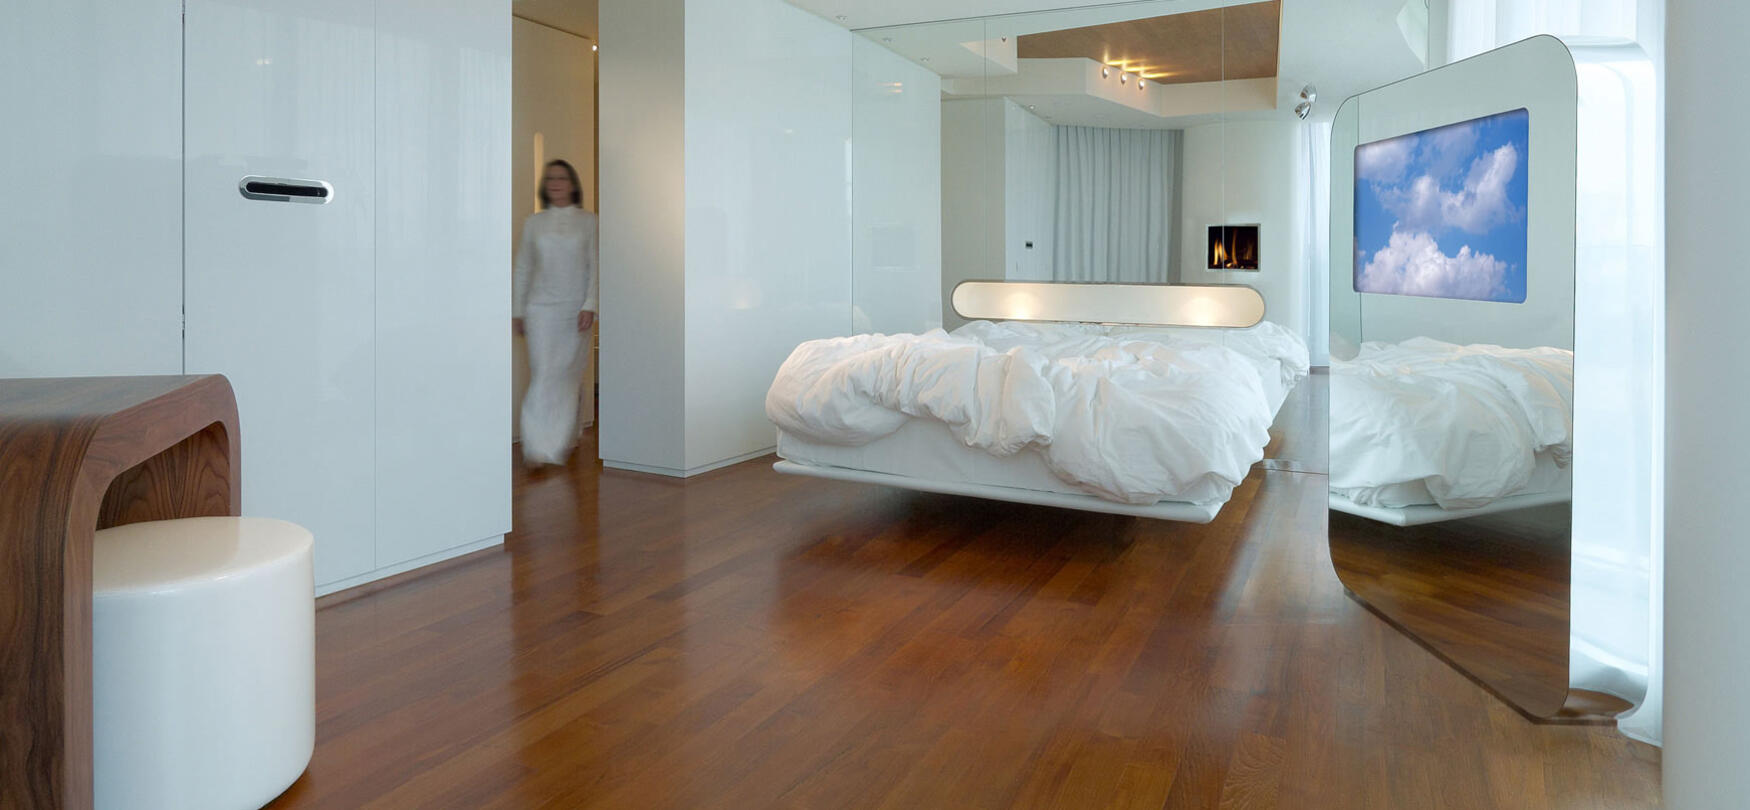 ambienthotels it camere-isuite 008